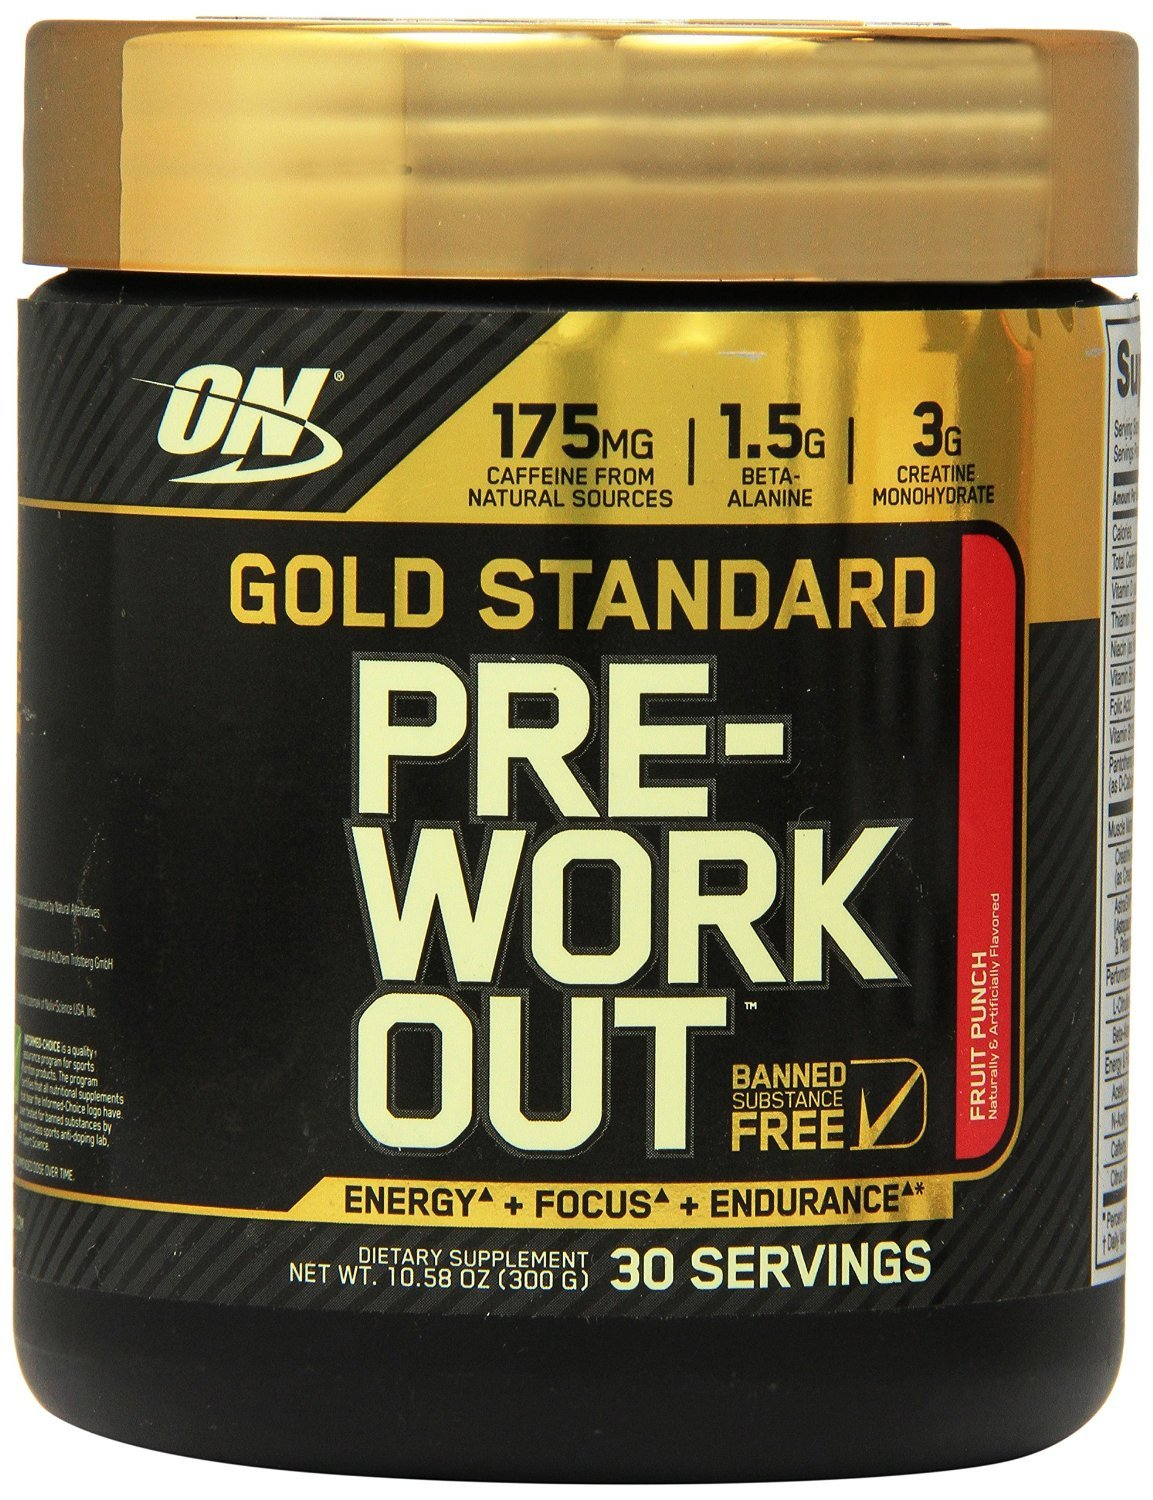 Optimum Nutrition GS Pre-workout Fruit Punch 30 Servings Pack of 2